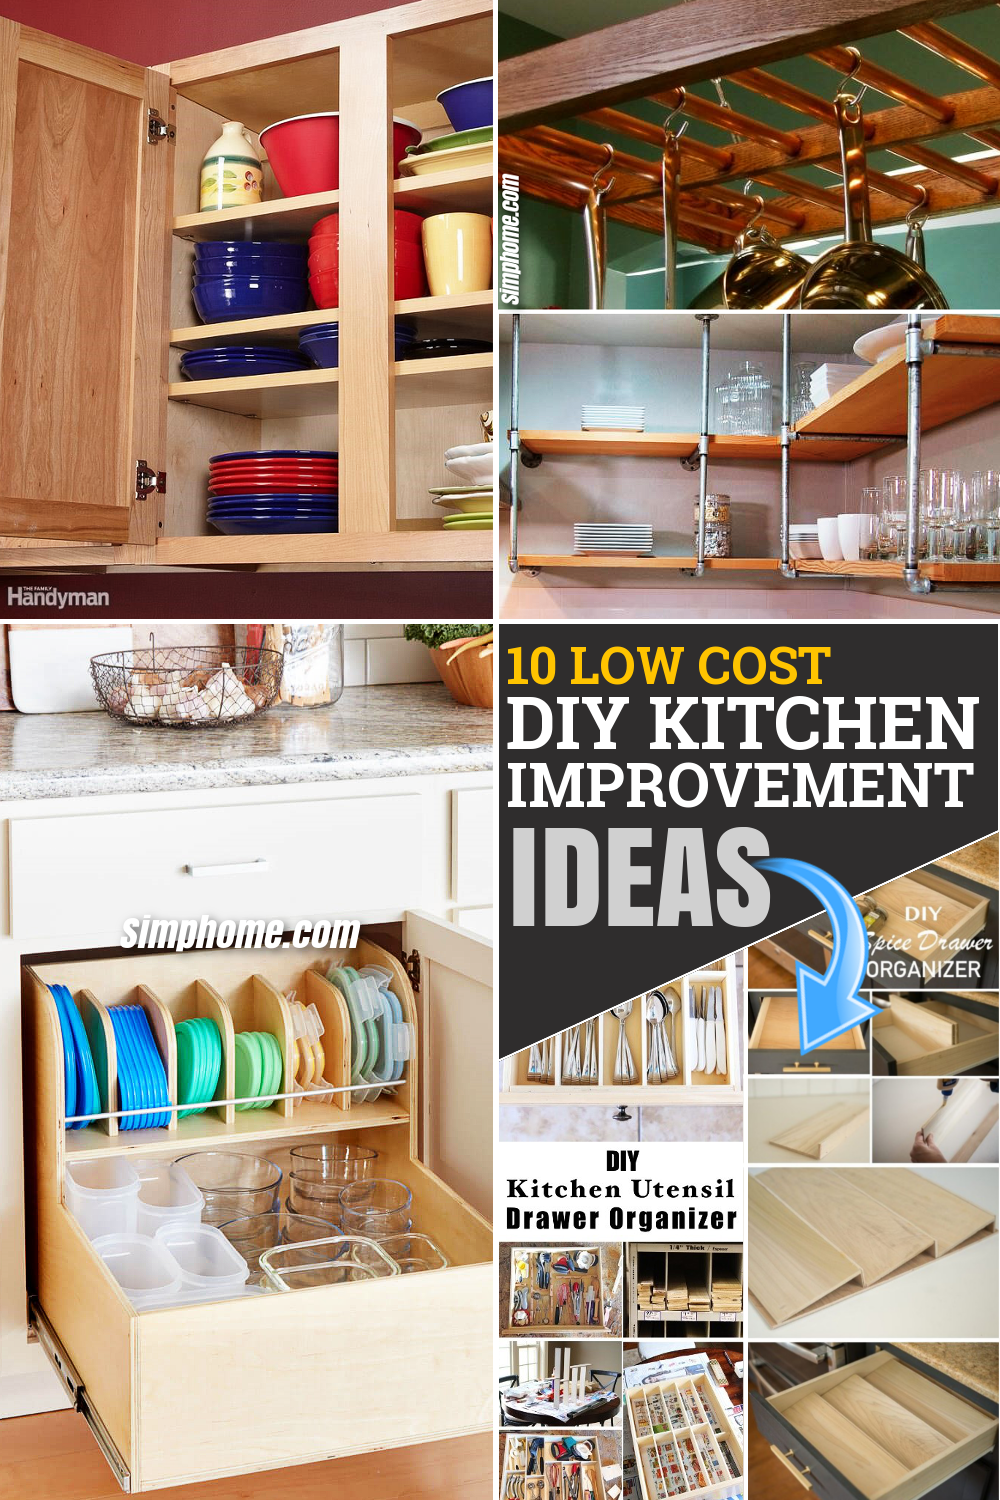 10 low cost DIY kitchen improvement storage ideas via Simphome.com Pinterest Featured Image